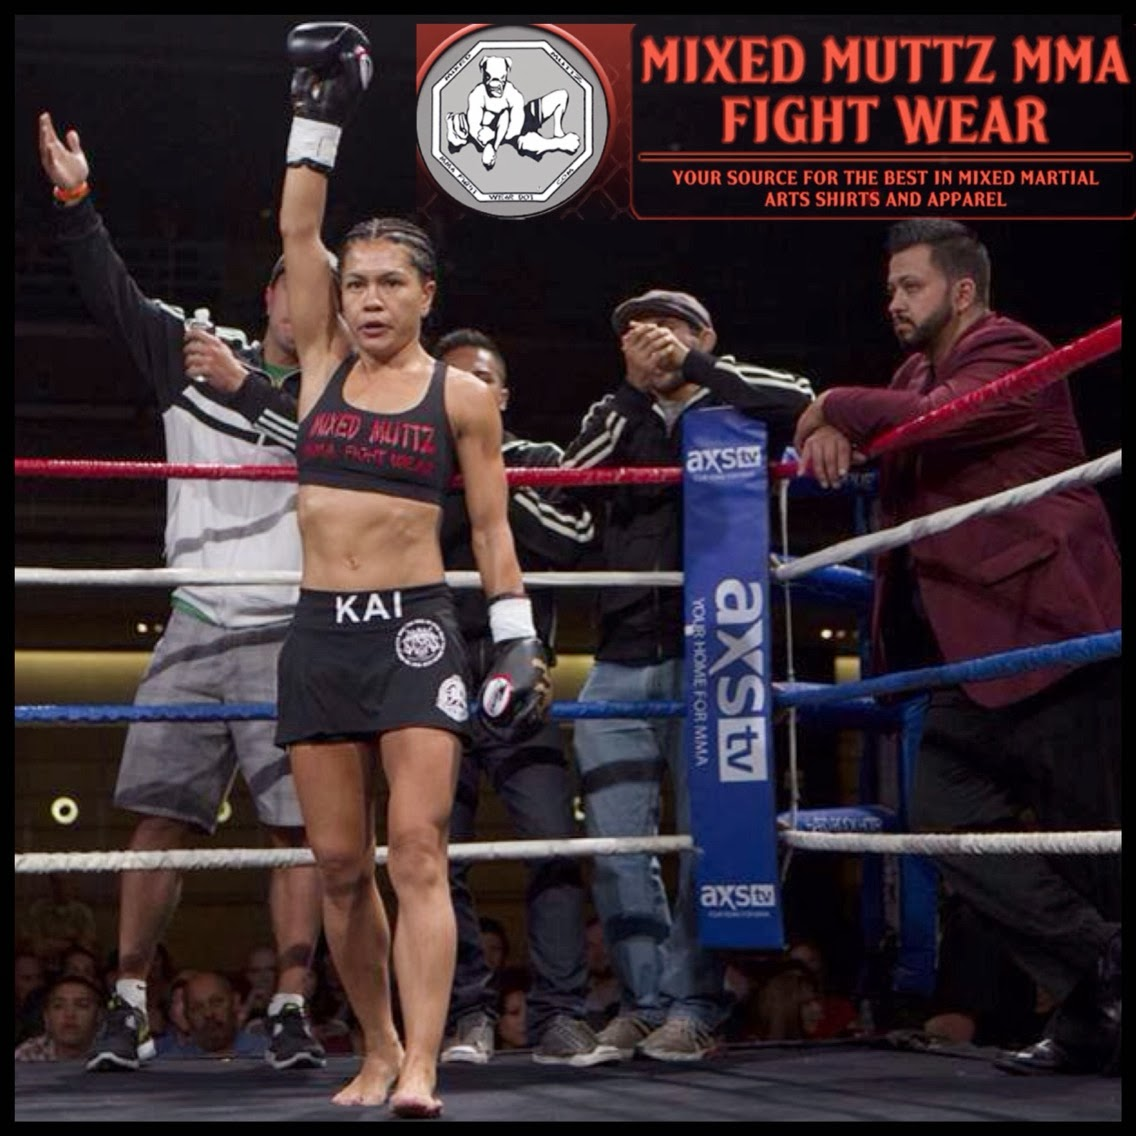 Mixed Muttz MMA Fight Wear